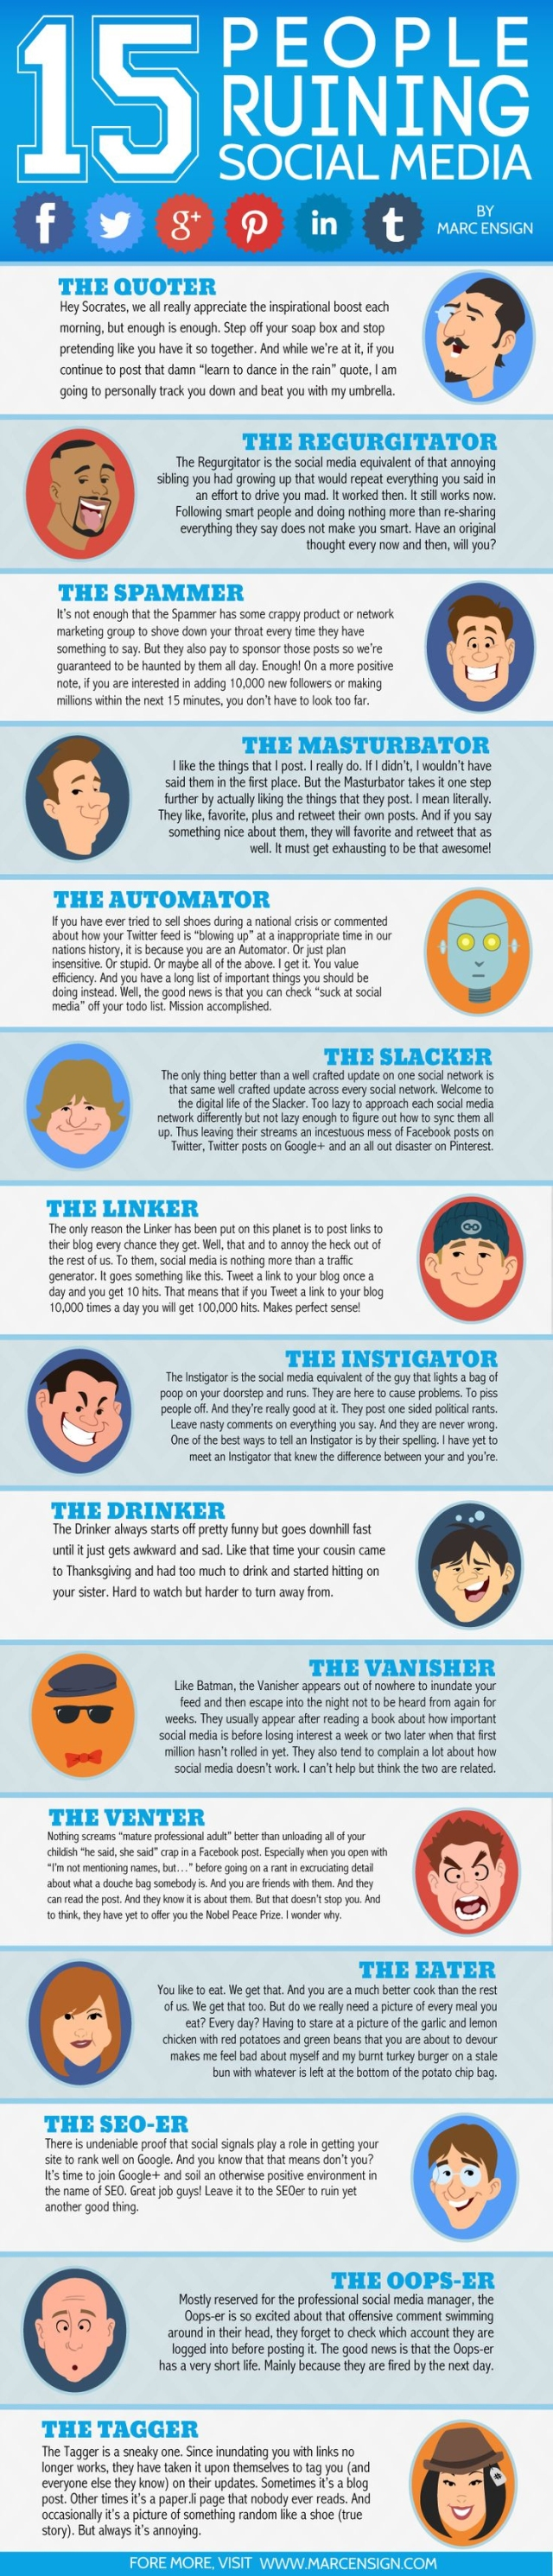 15 Types of People Ruining Social Media (We're Probably 3 of Them!)